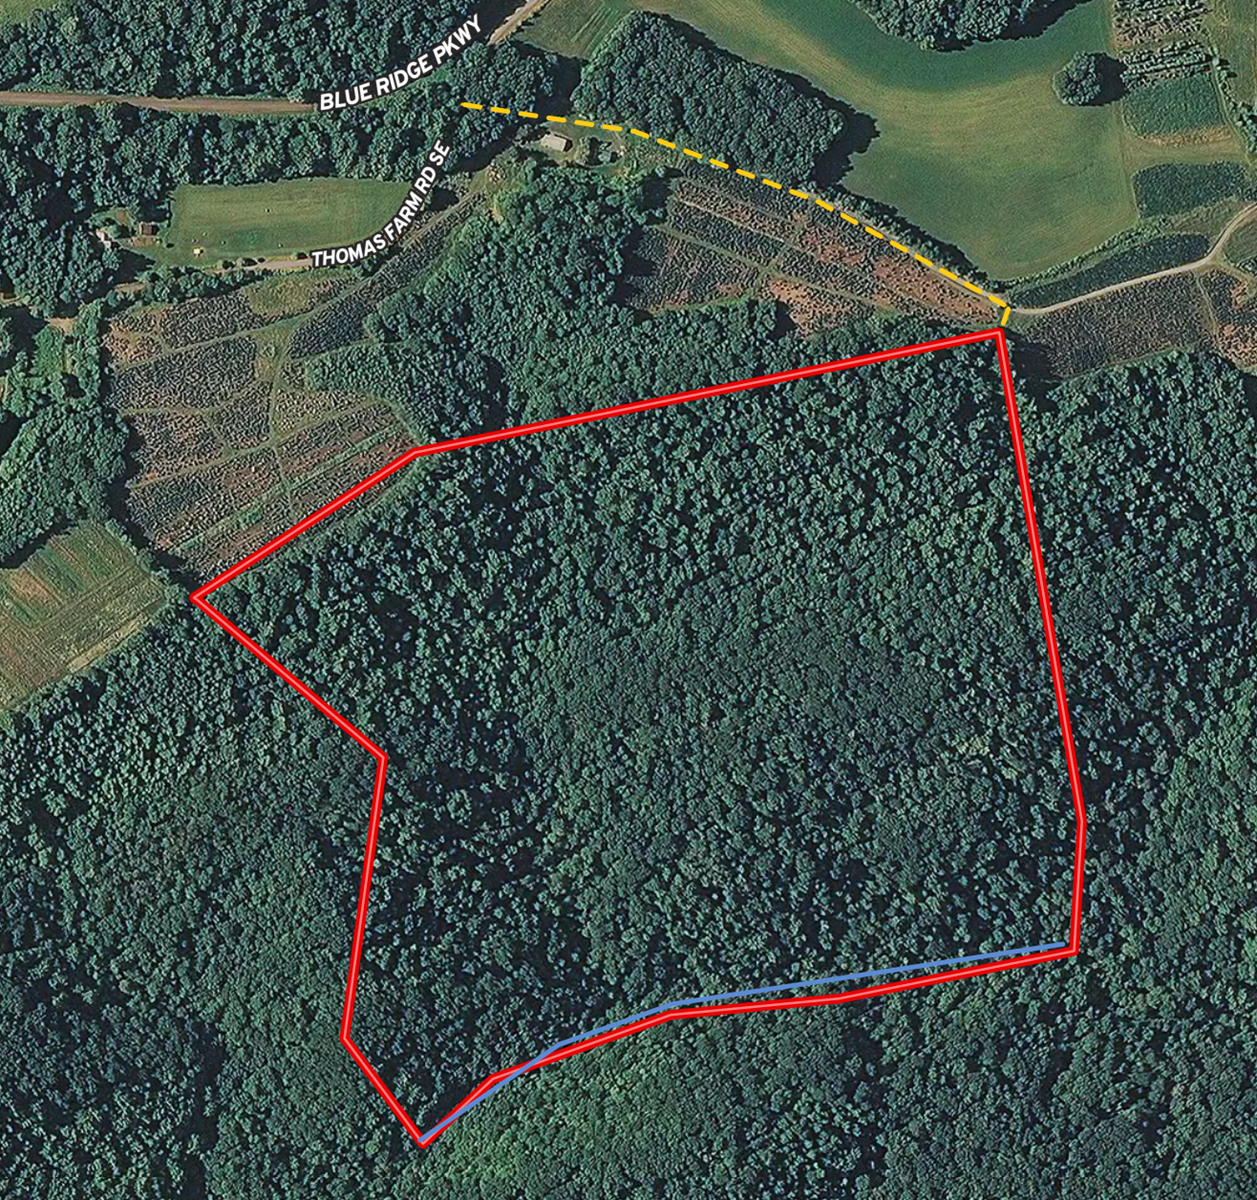 Large Tract of Wooded Land for Sale in Floyd VA